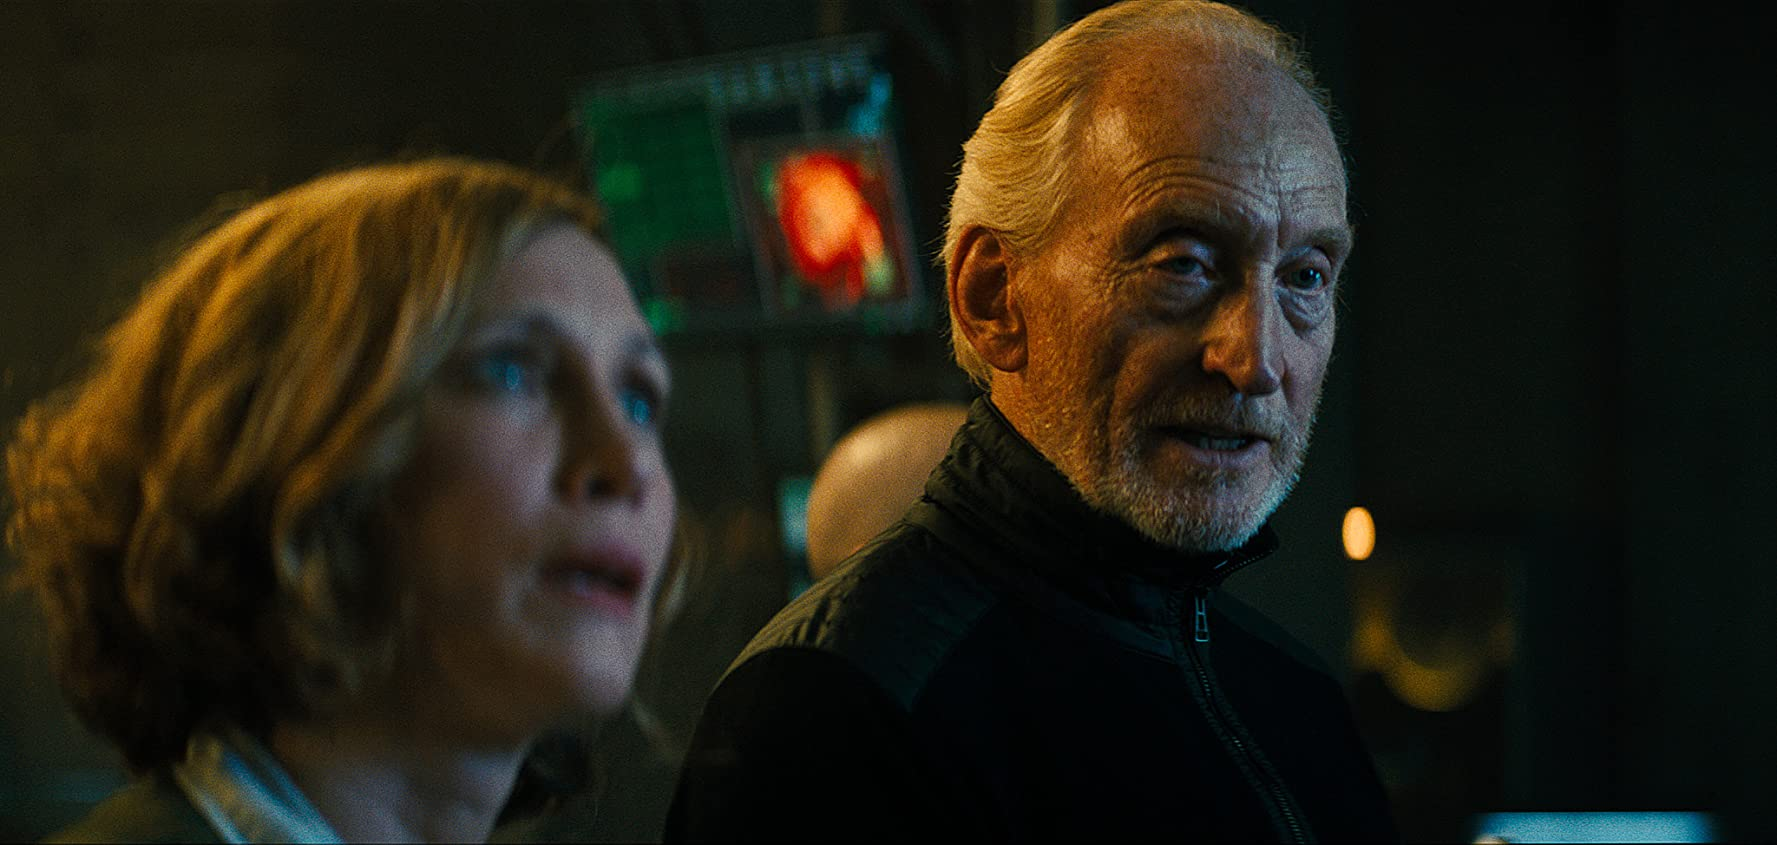 Charles Dance and Vera Farmiga in Godzilla: King of the Monsters (2019)